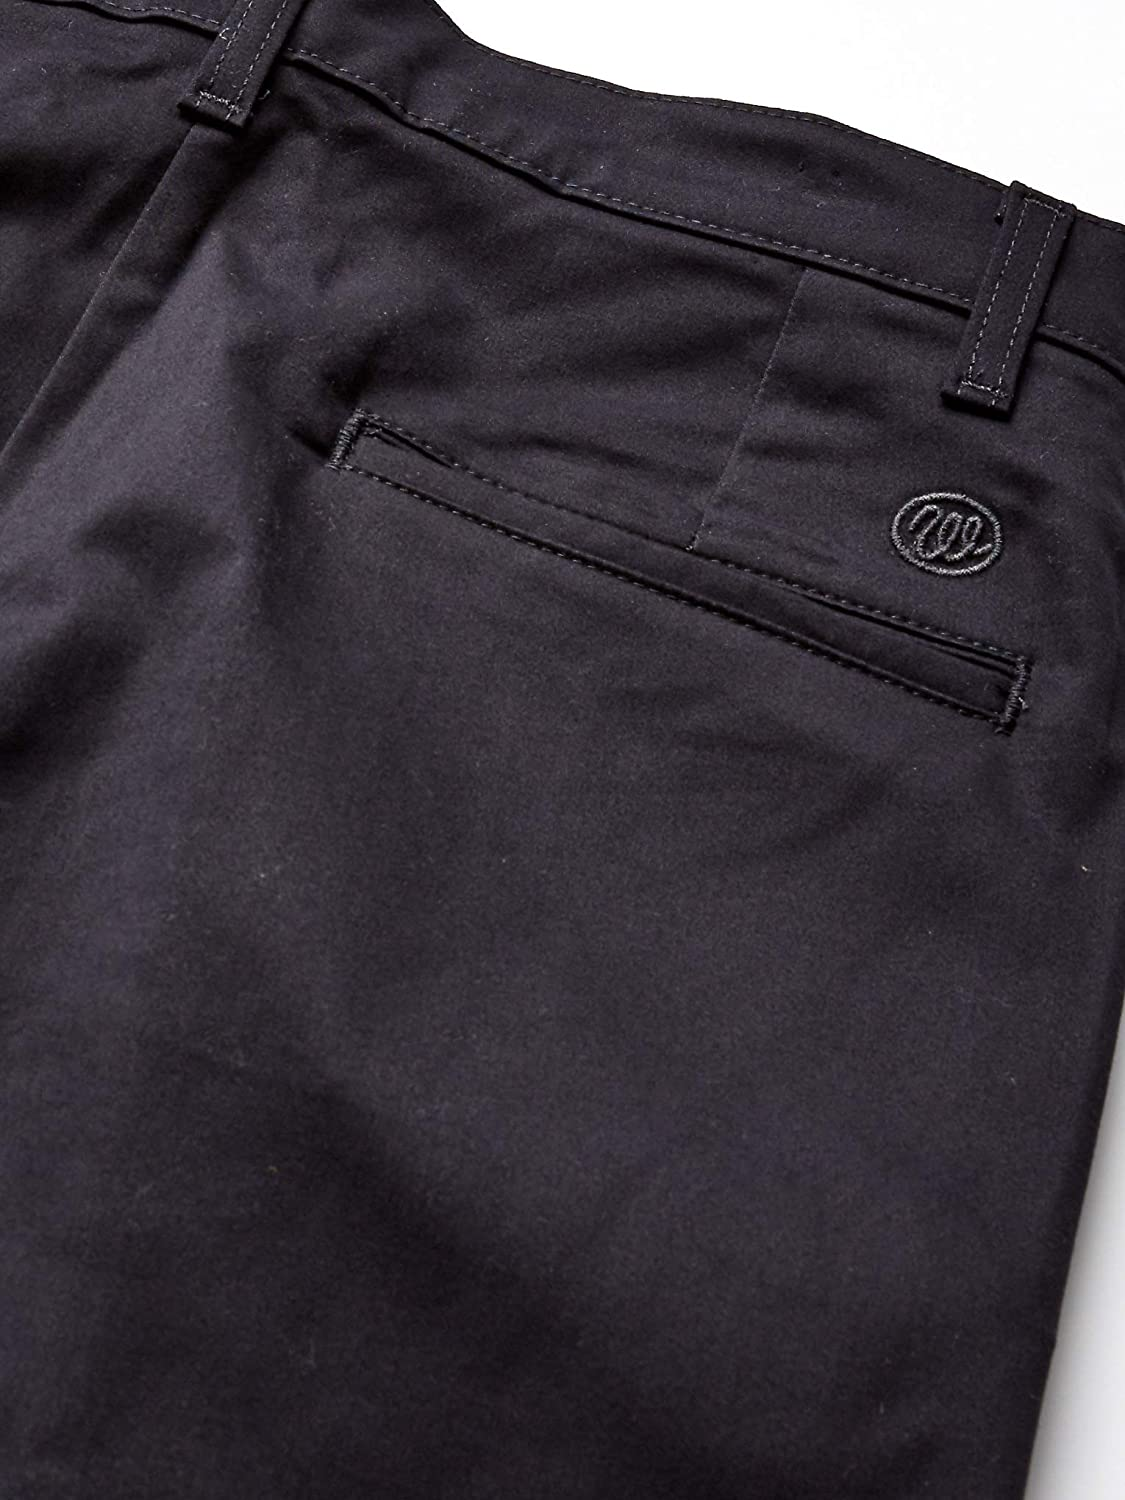 Wrangler Men/'s Big /& Tall Pleated Relaxed Fit Casual Pant